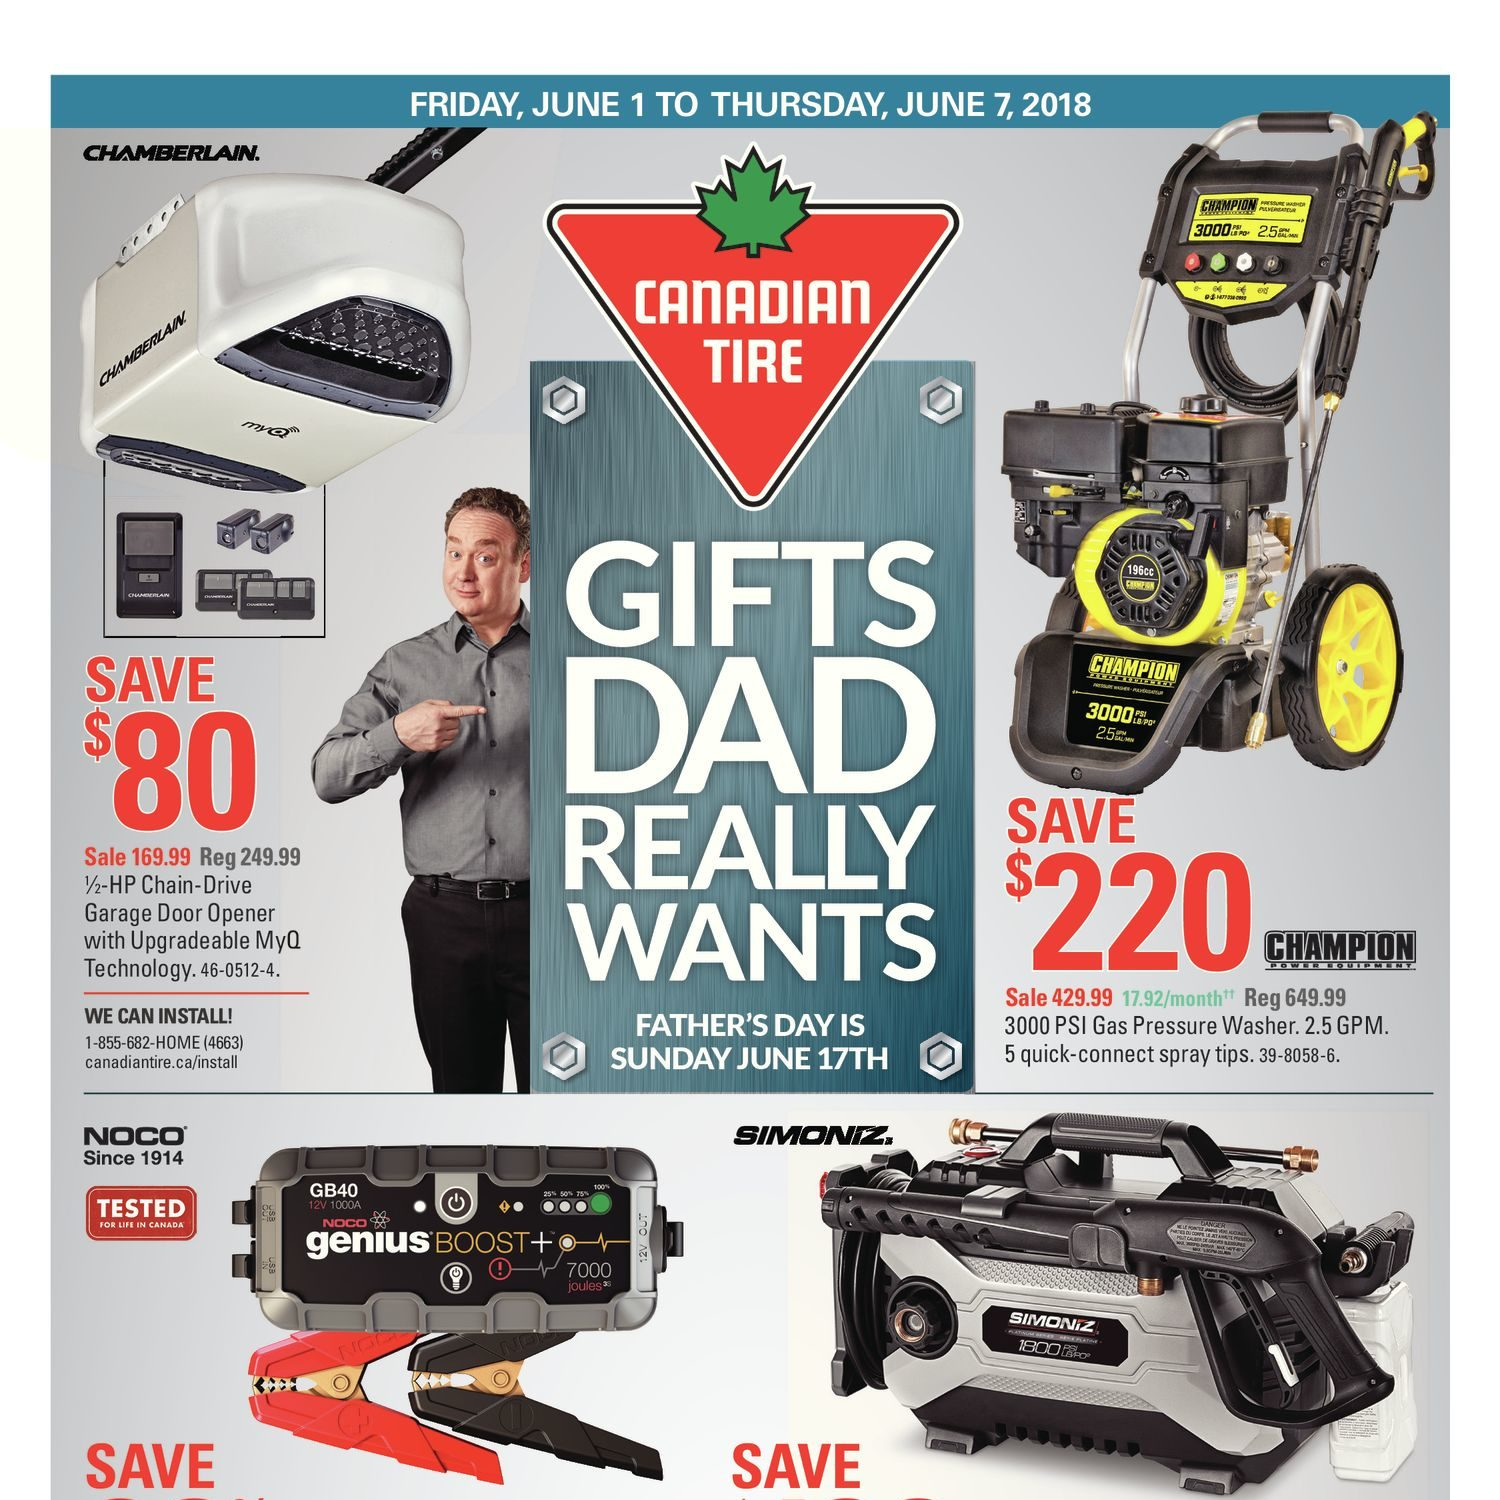 Canadian tire weekly flyer gifts dad really wants jun 1 7 canadian tire weekly flyer gifts dad really wants jun 1 7 redflagdeals keyboard keysfo Images